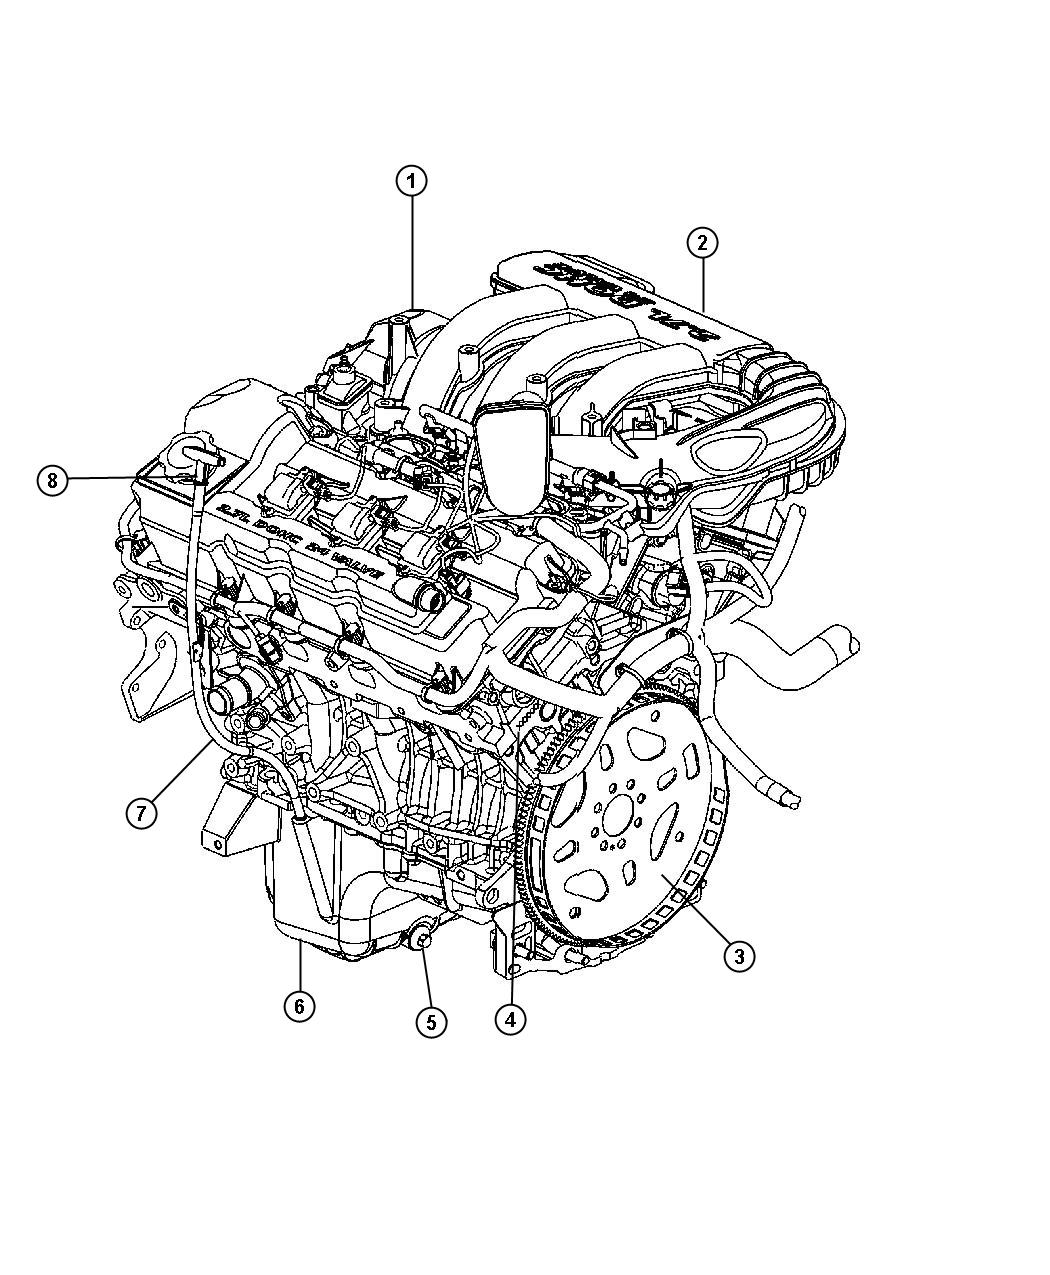 Picture Of Chrysler 300 Motor And Engine Parts, Picture